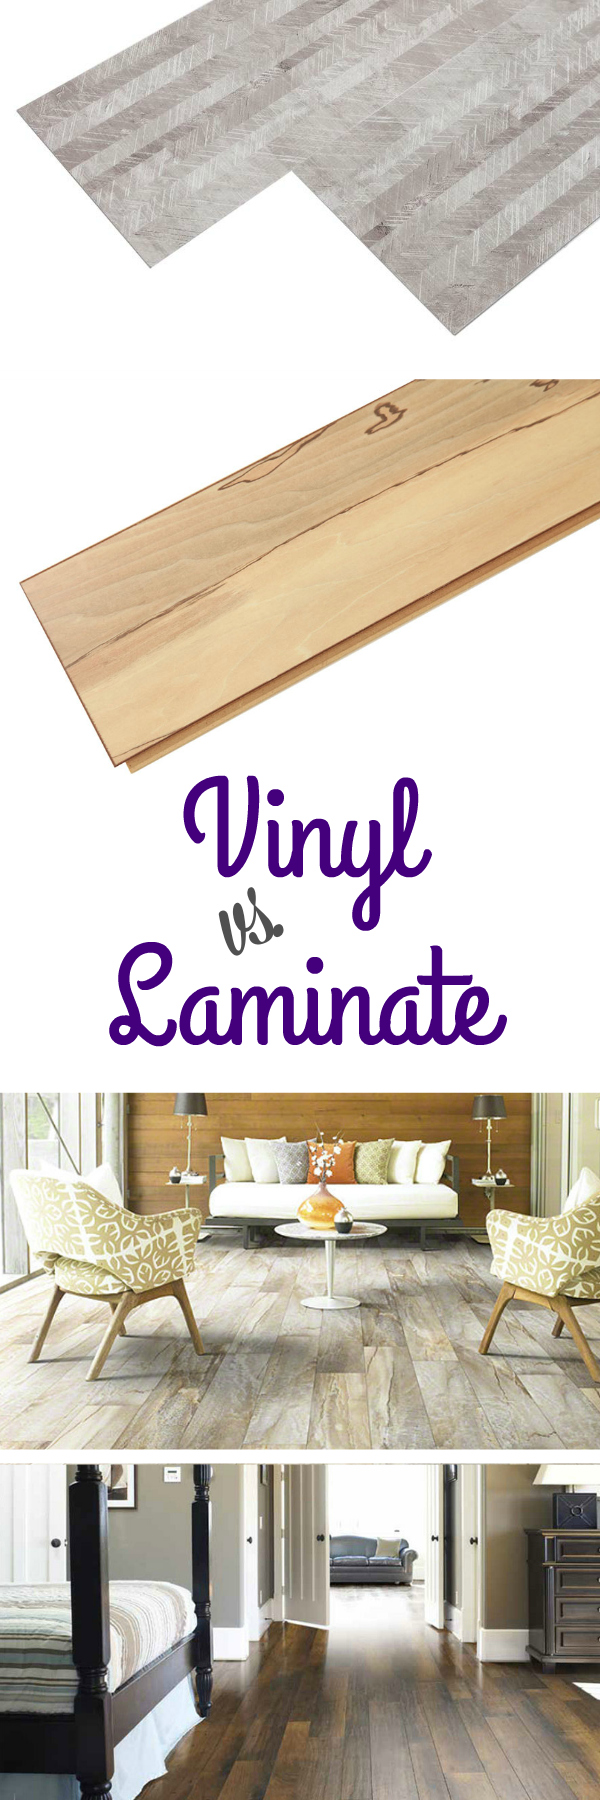 Pros And Cons Of Laminate Flooring vinyl vs laminate flooring pros Laminate Flooring Many People Dont Know The Difference Between Vinyl